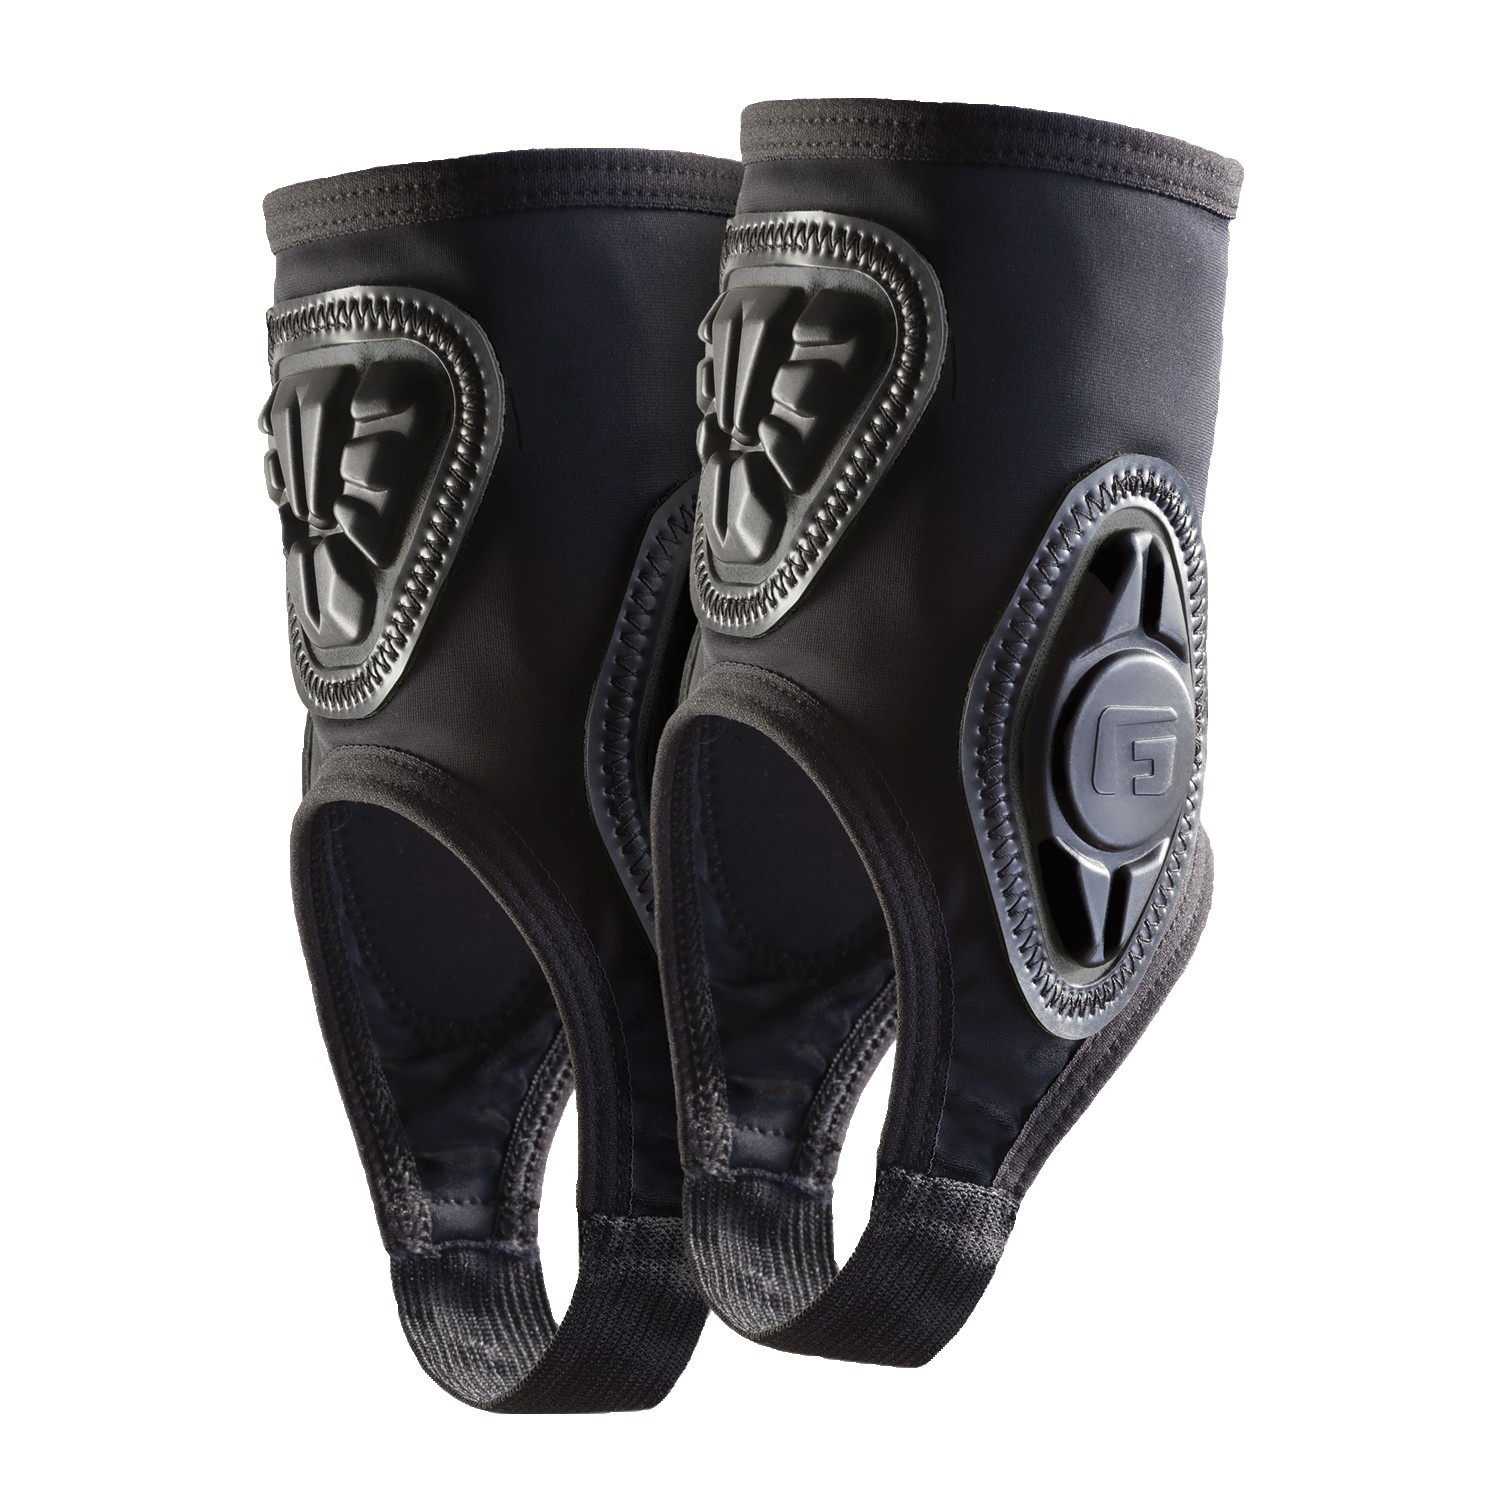 G-FORM PRO-X ANKLE GUARD BLACK